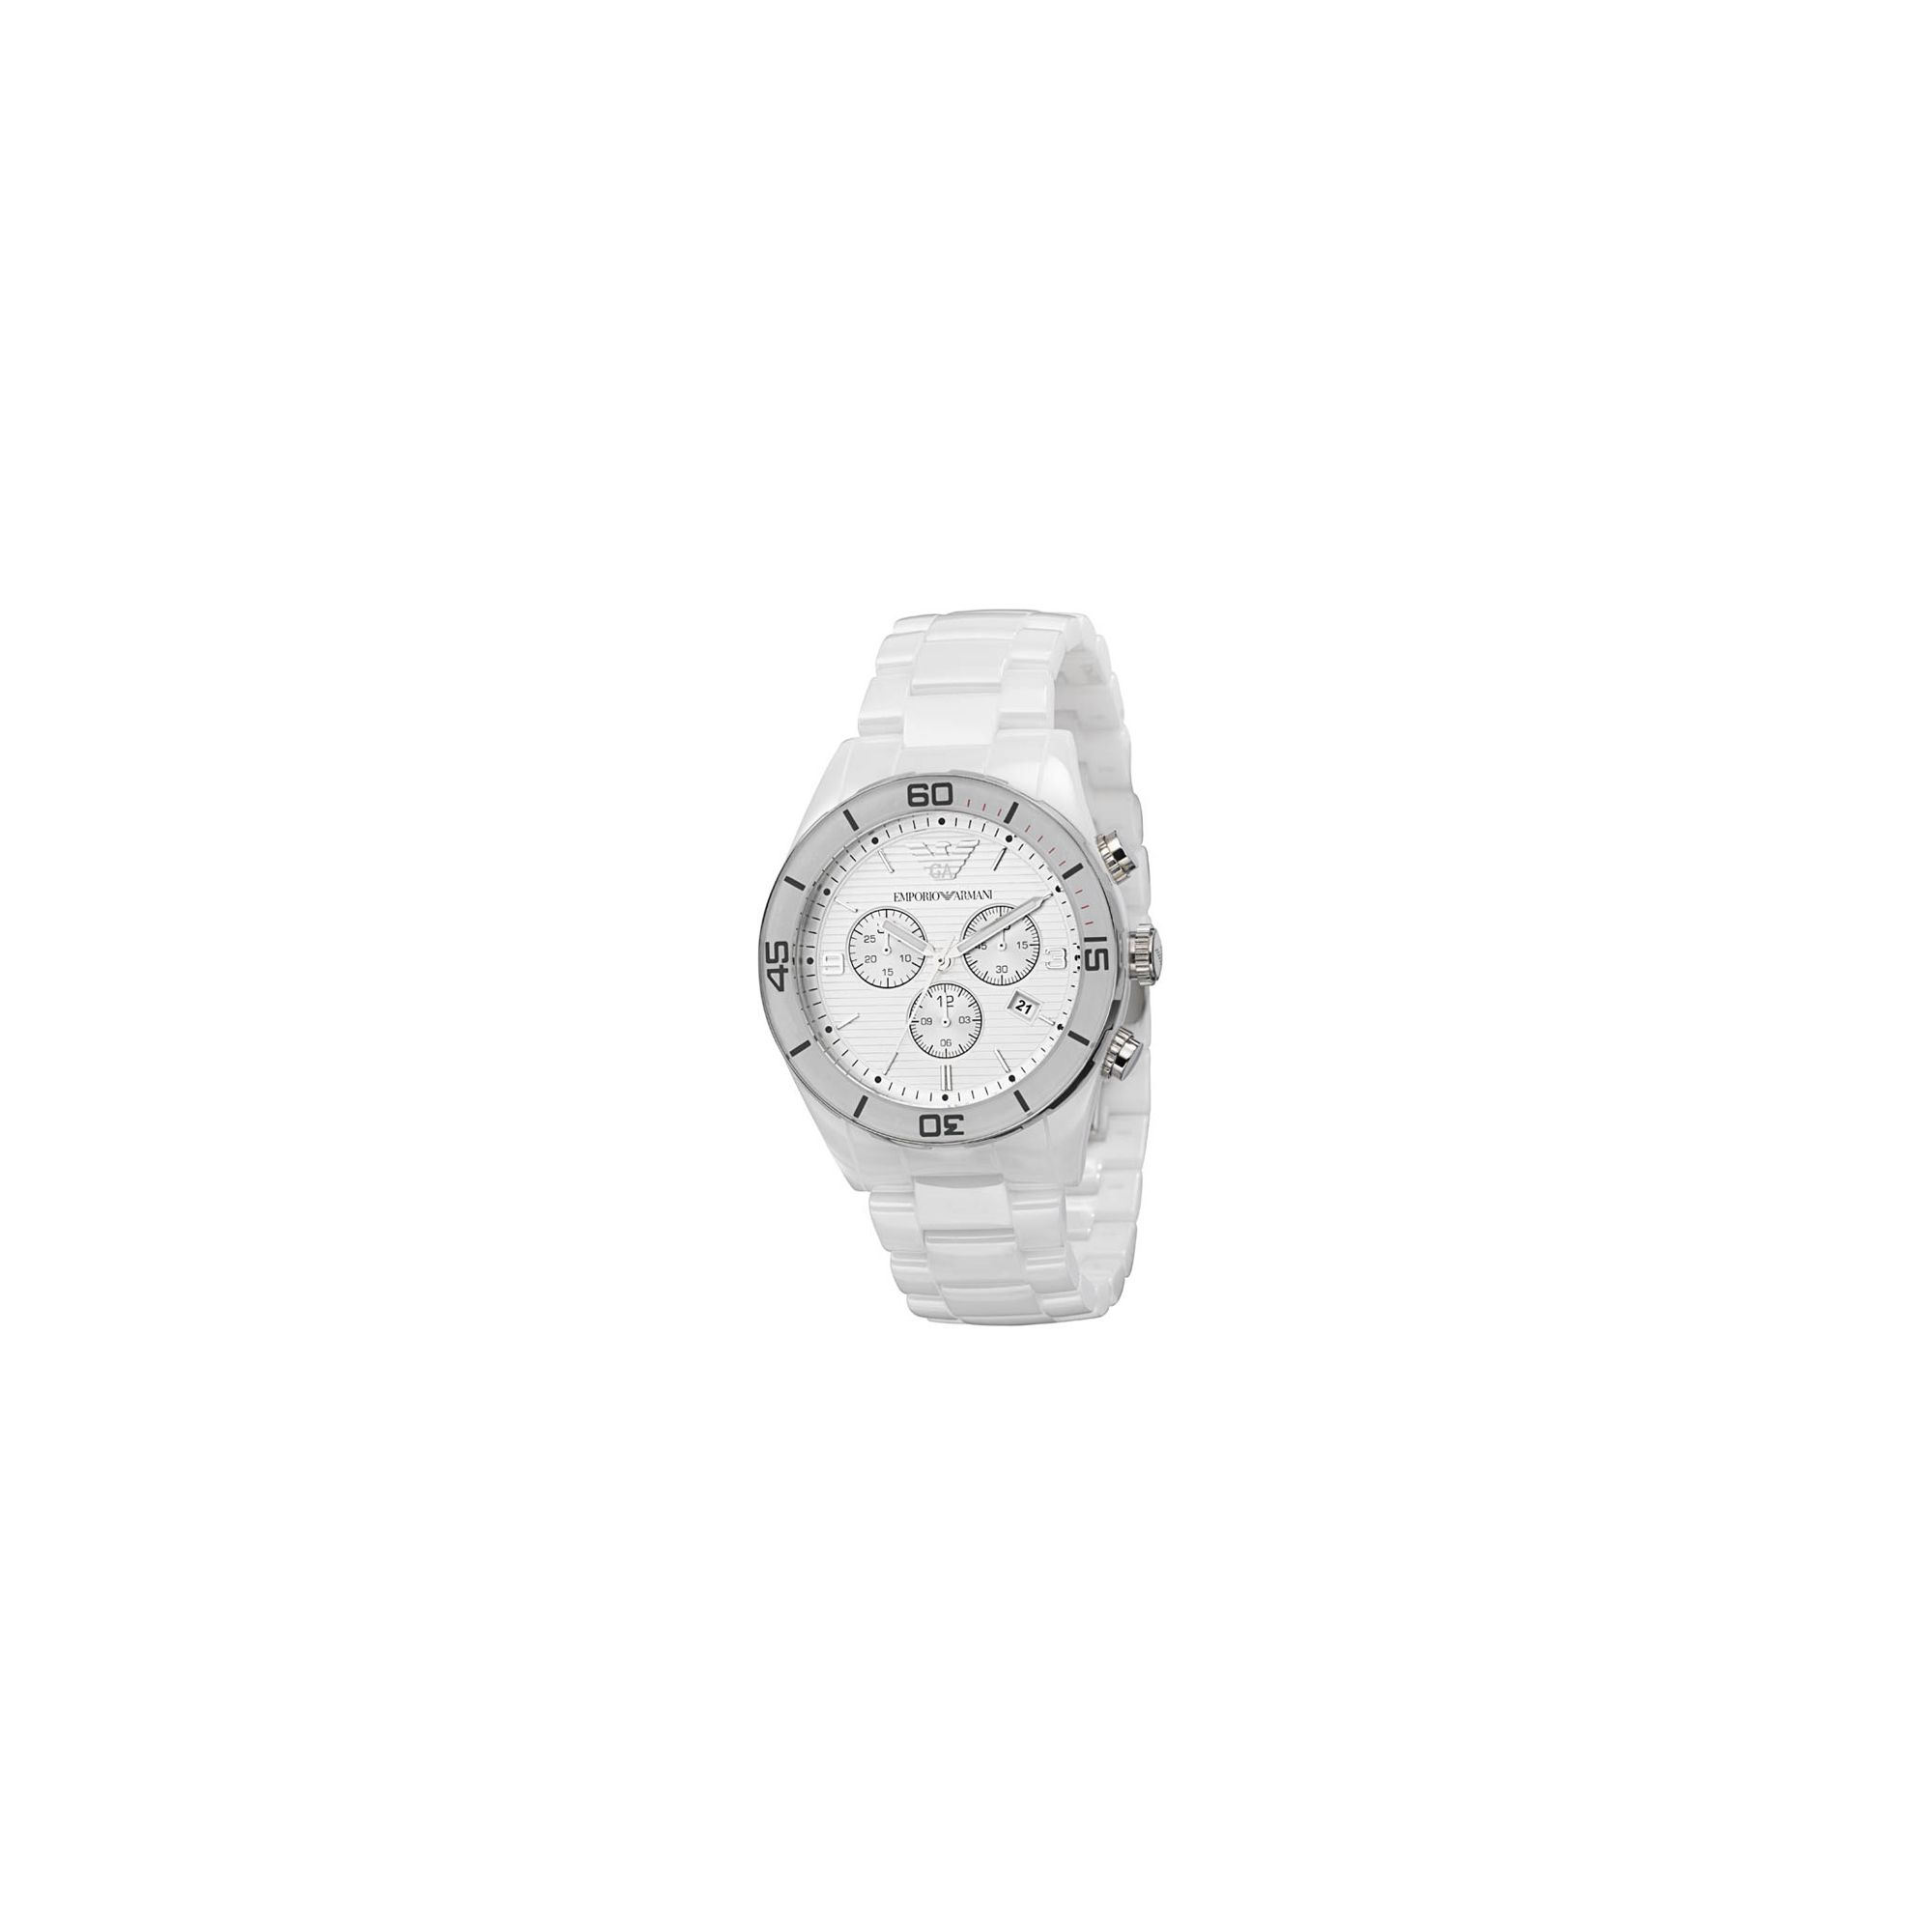 Emporio Armani Gents White Ceramica Chrono Watch AR1424 at Tesco Direct